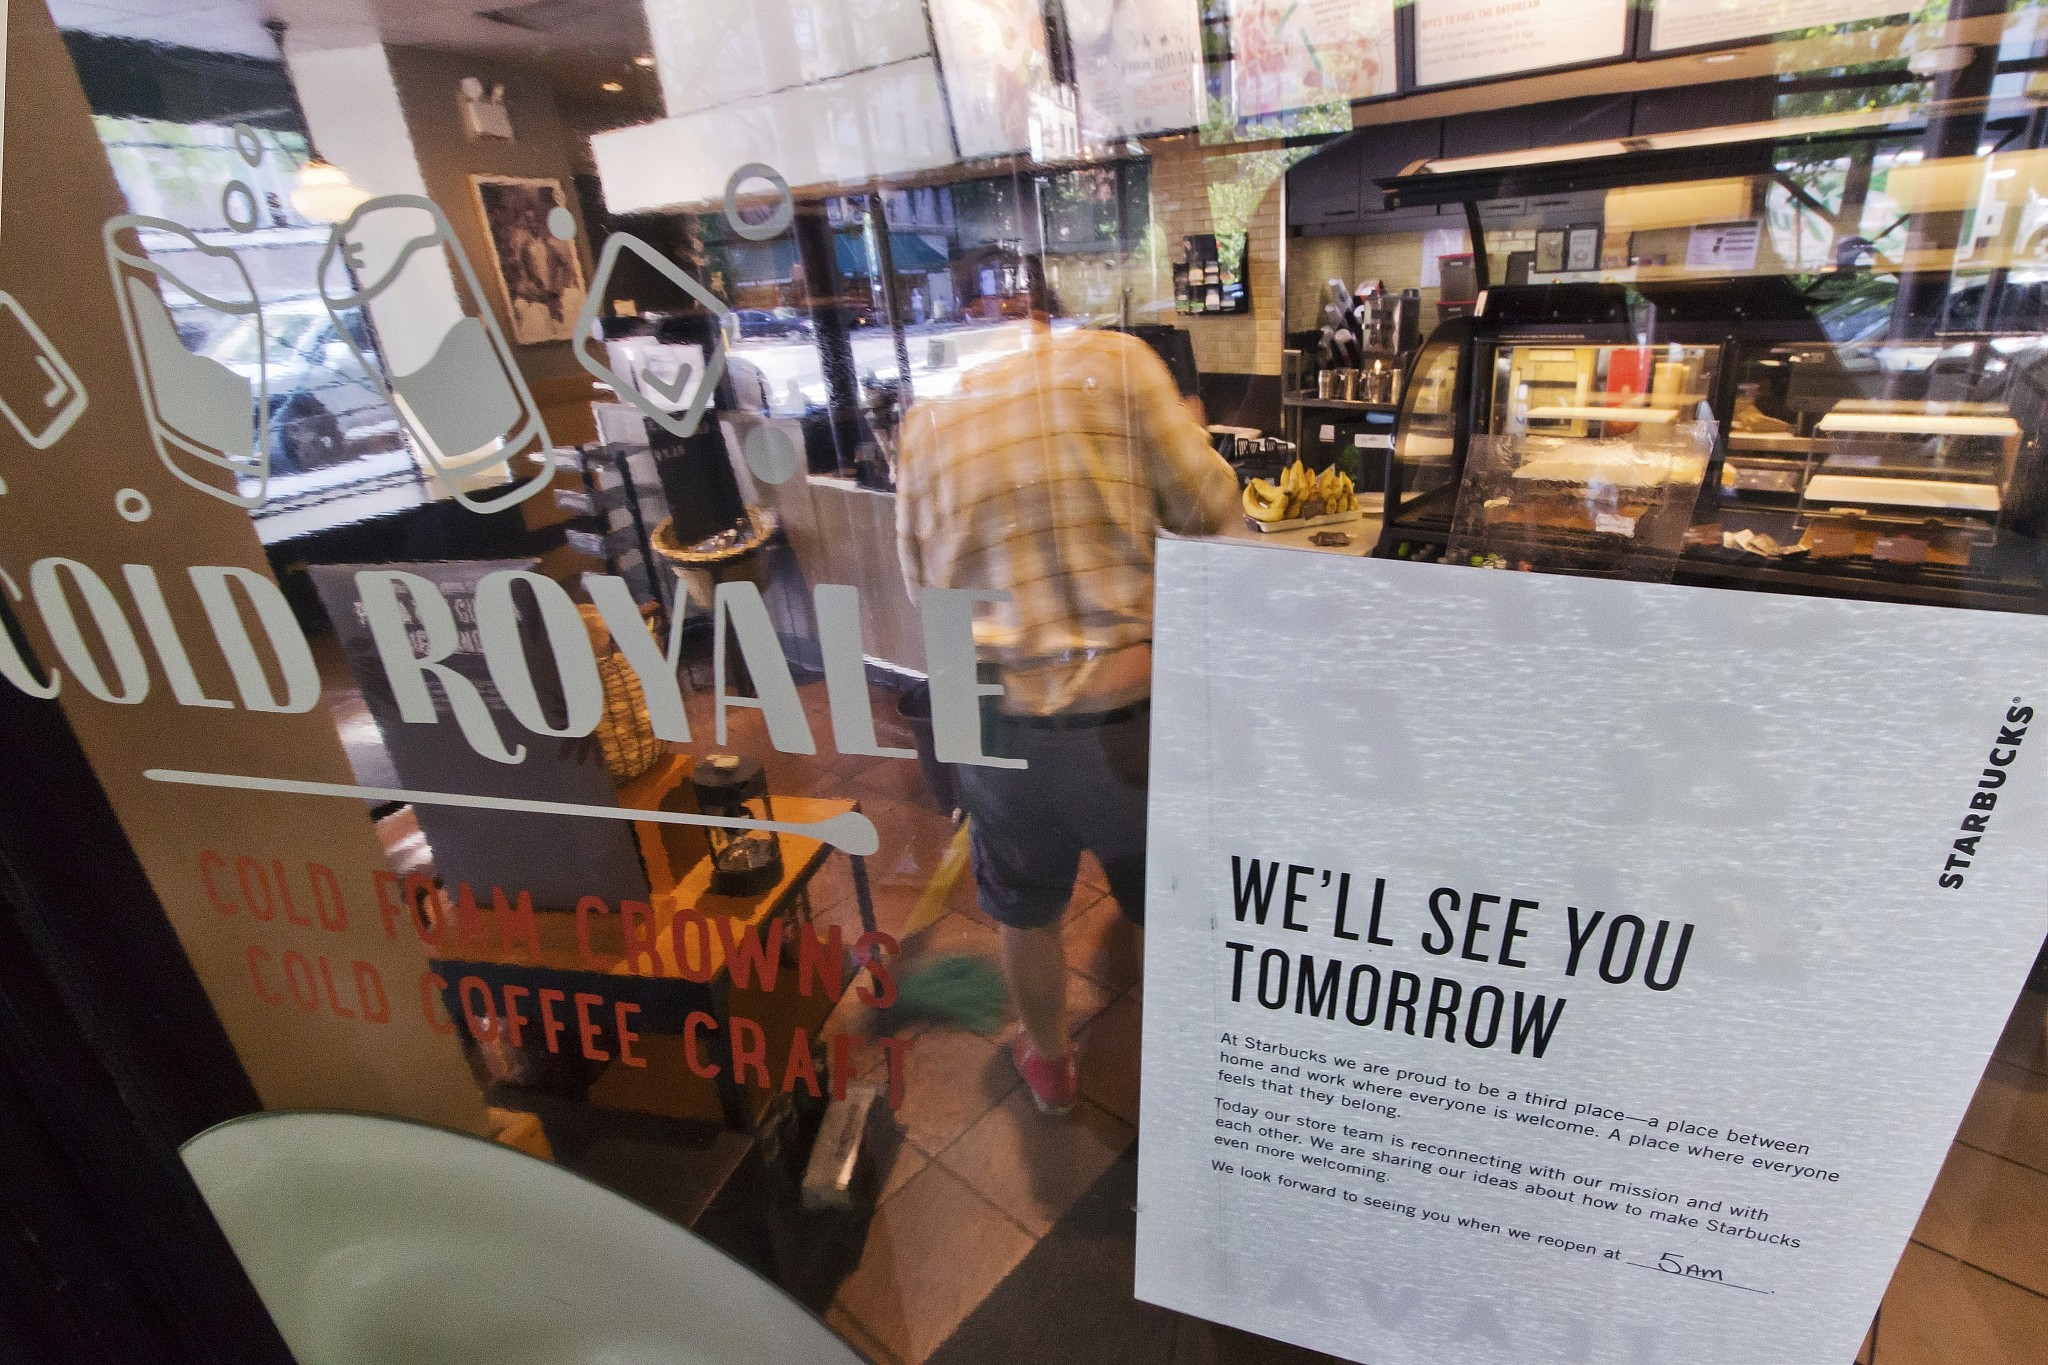 Starbucks halts brewing so its employees can talk about race